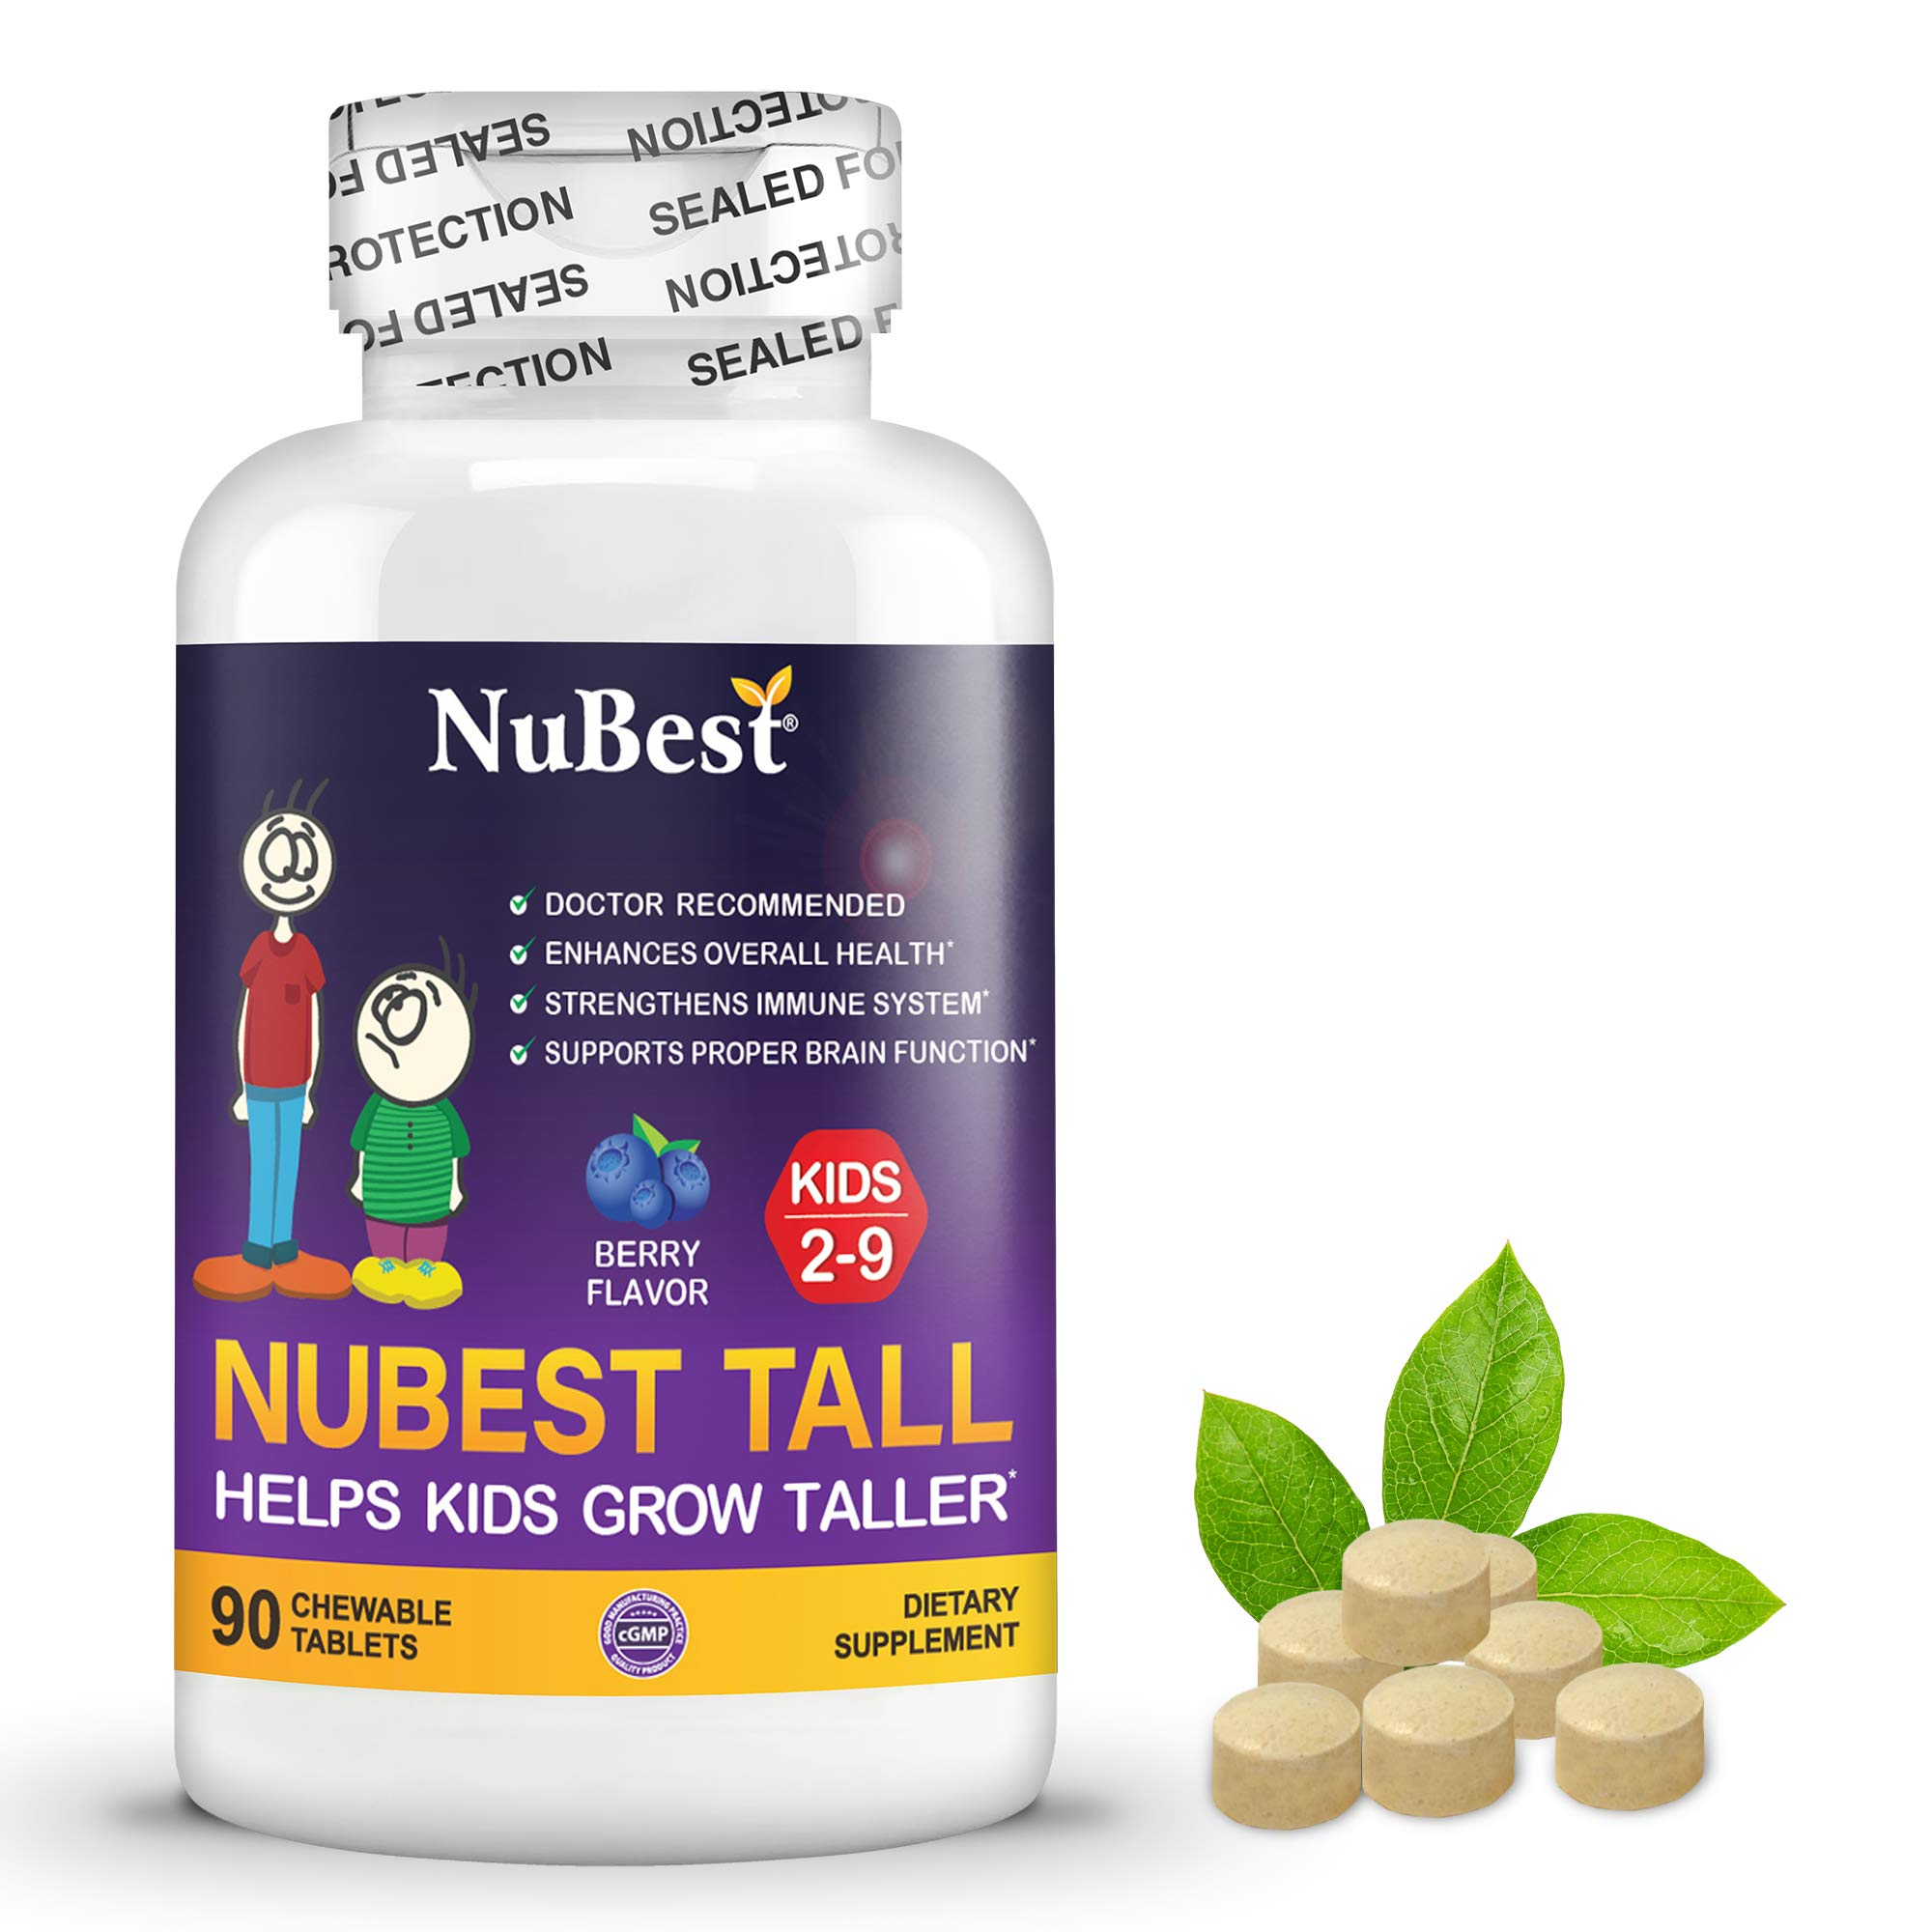 NuBest Tall Kids - Supports Healthy Growth in Kids from 2 to 9 Years Old with Multivitamins and Multi-Minerals - Berry Flavor - Helps Kids Grow - 90 Chewable Tablets